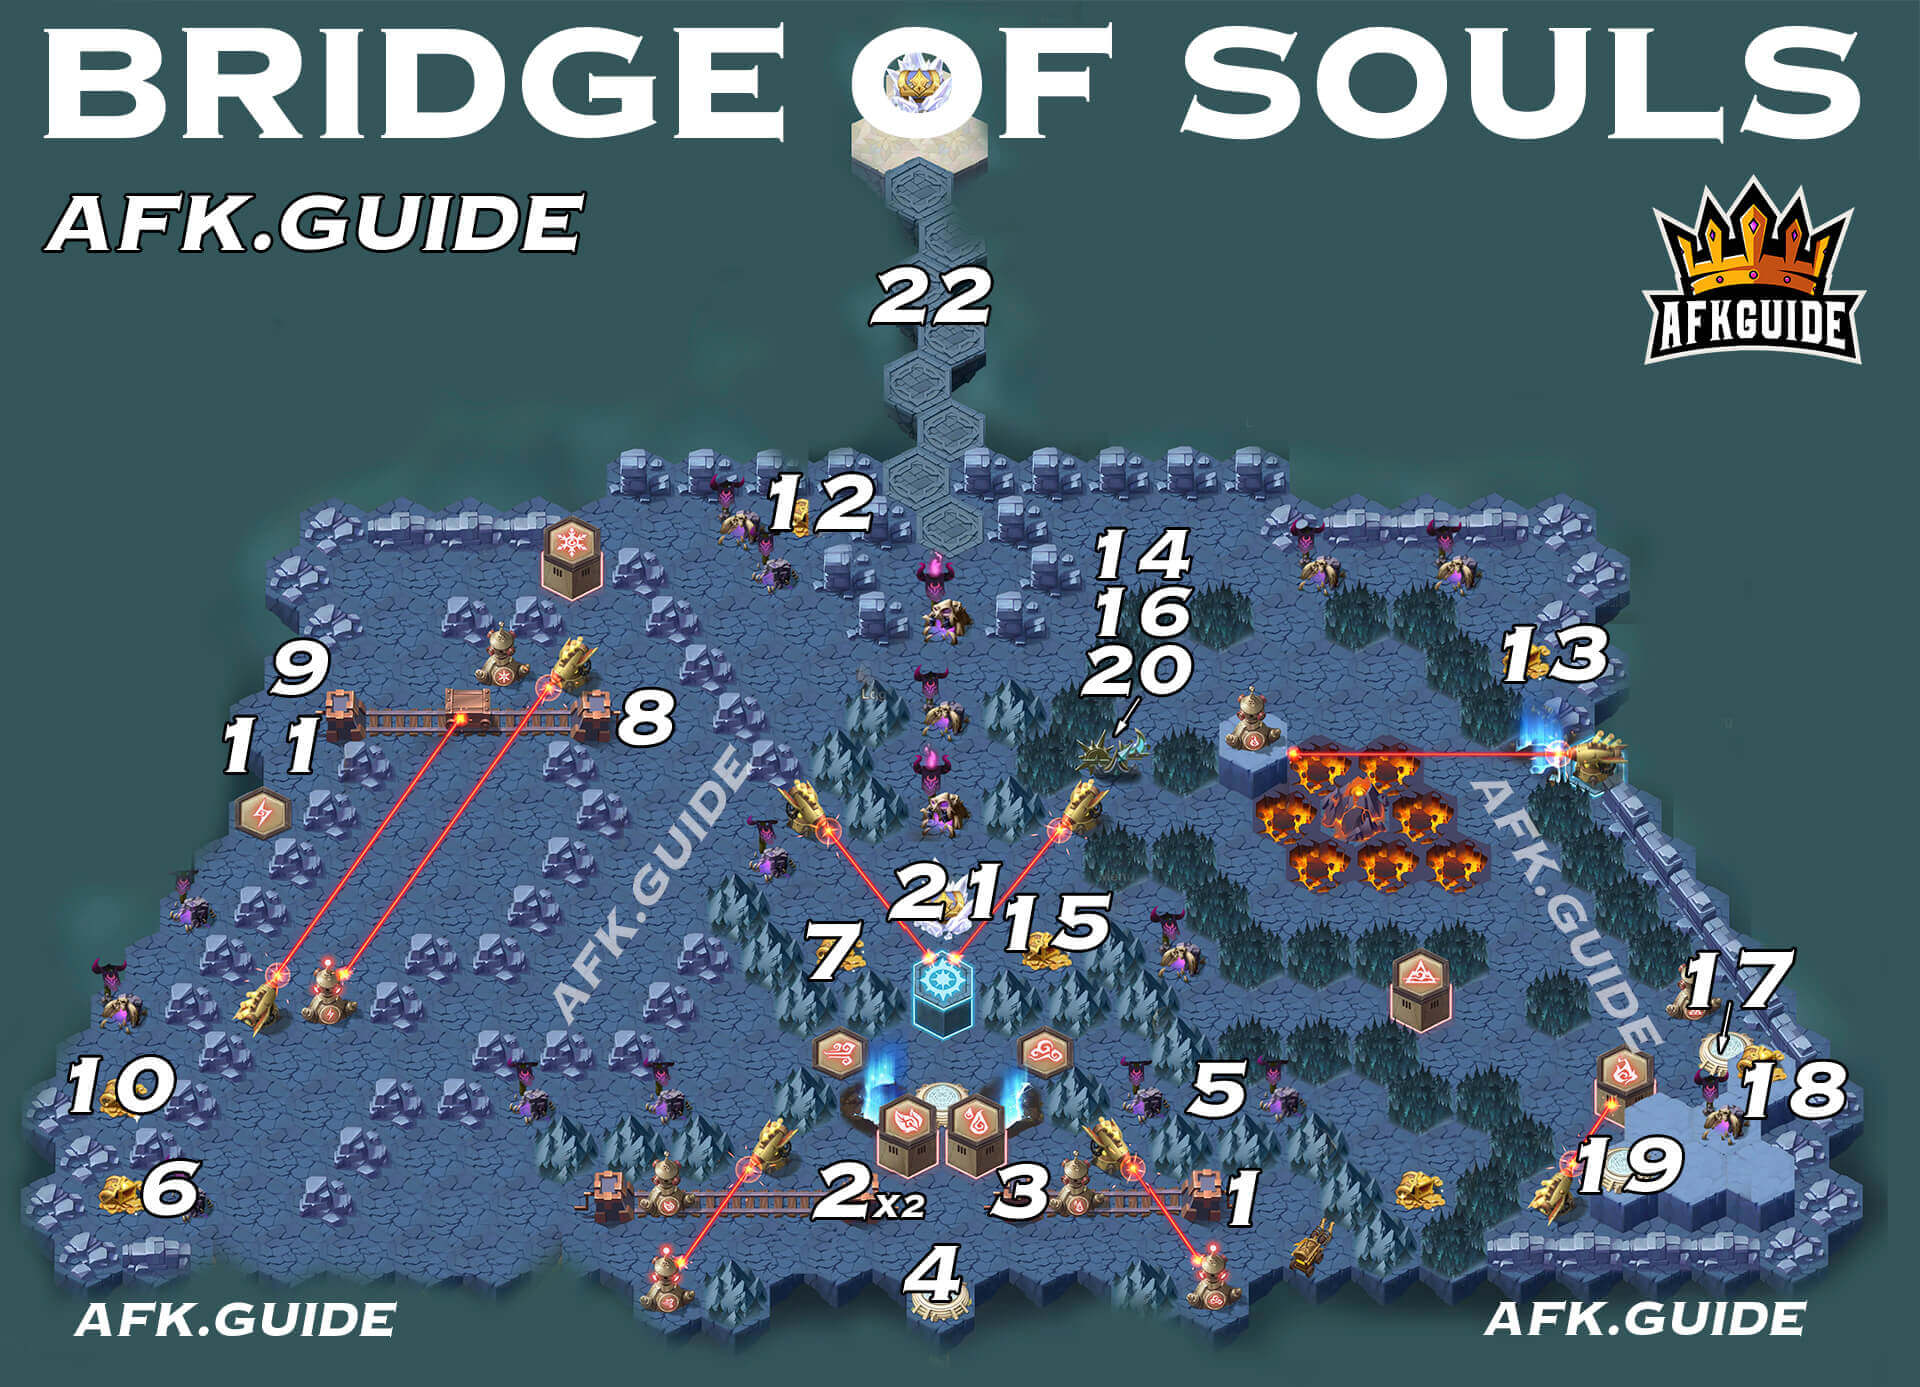 bridge of souls afk arena map guide